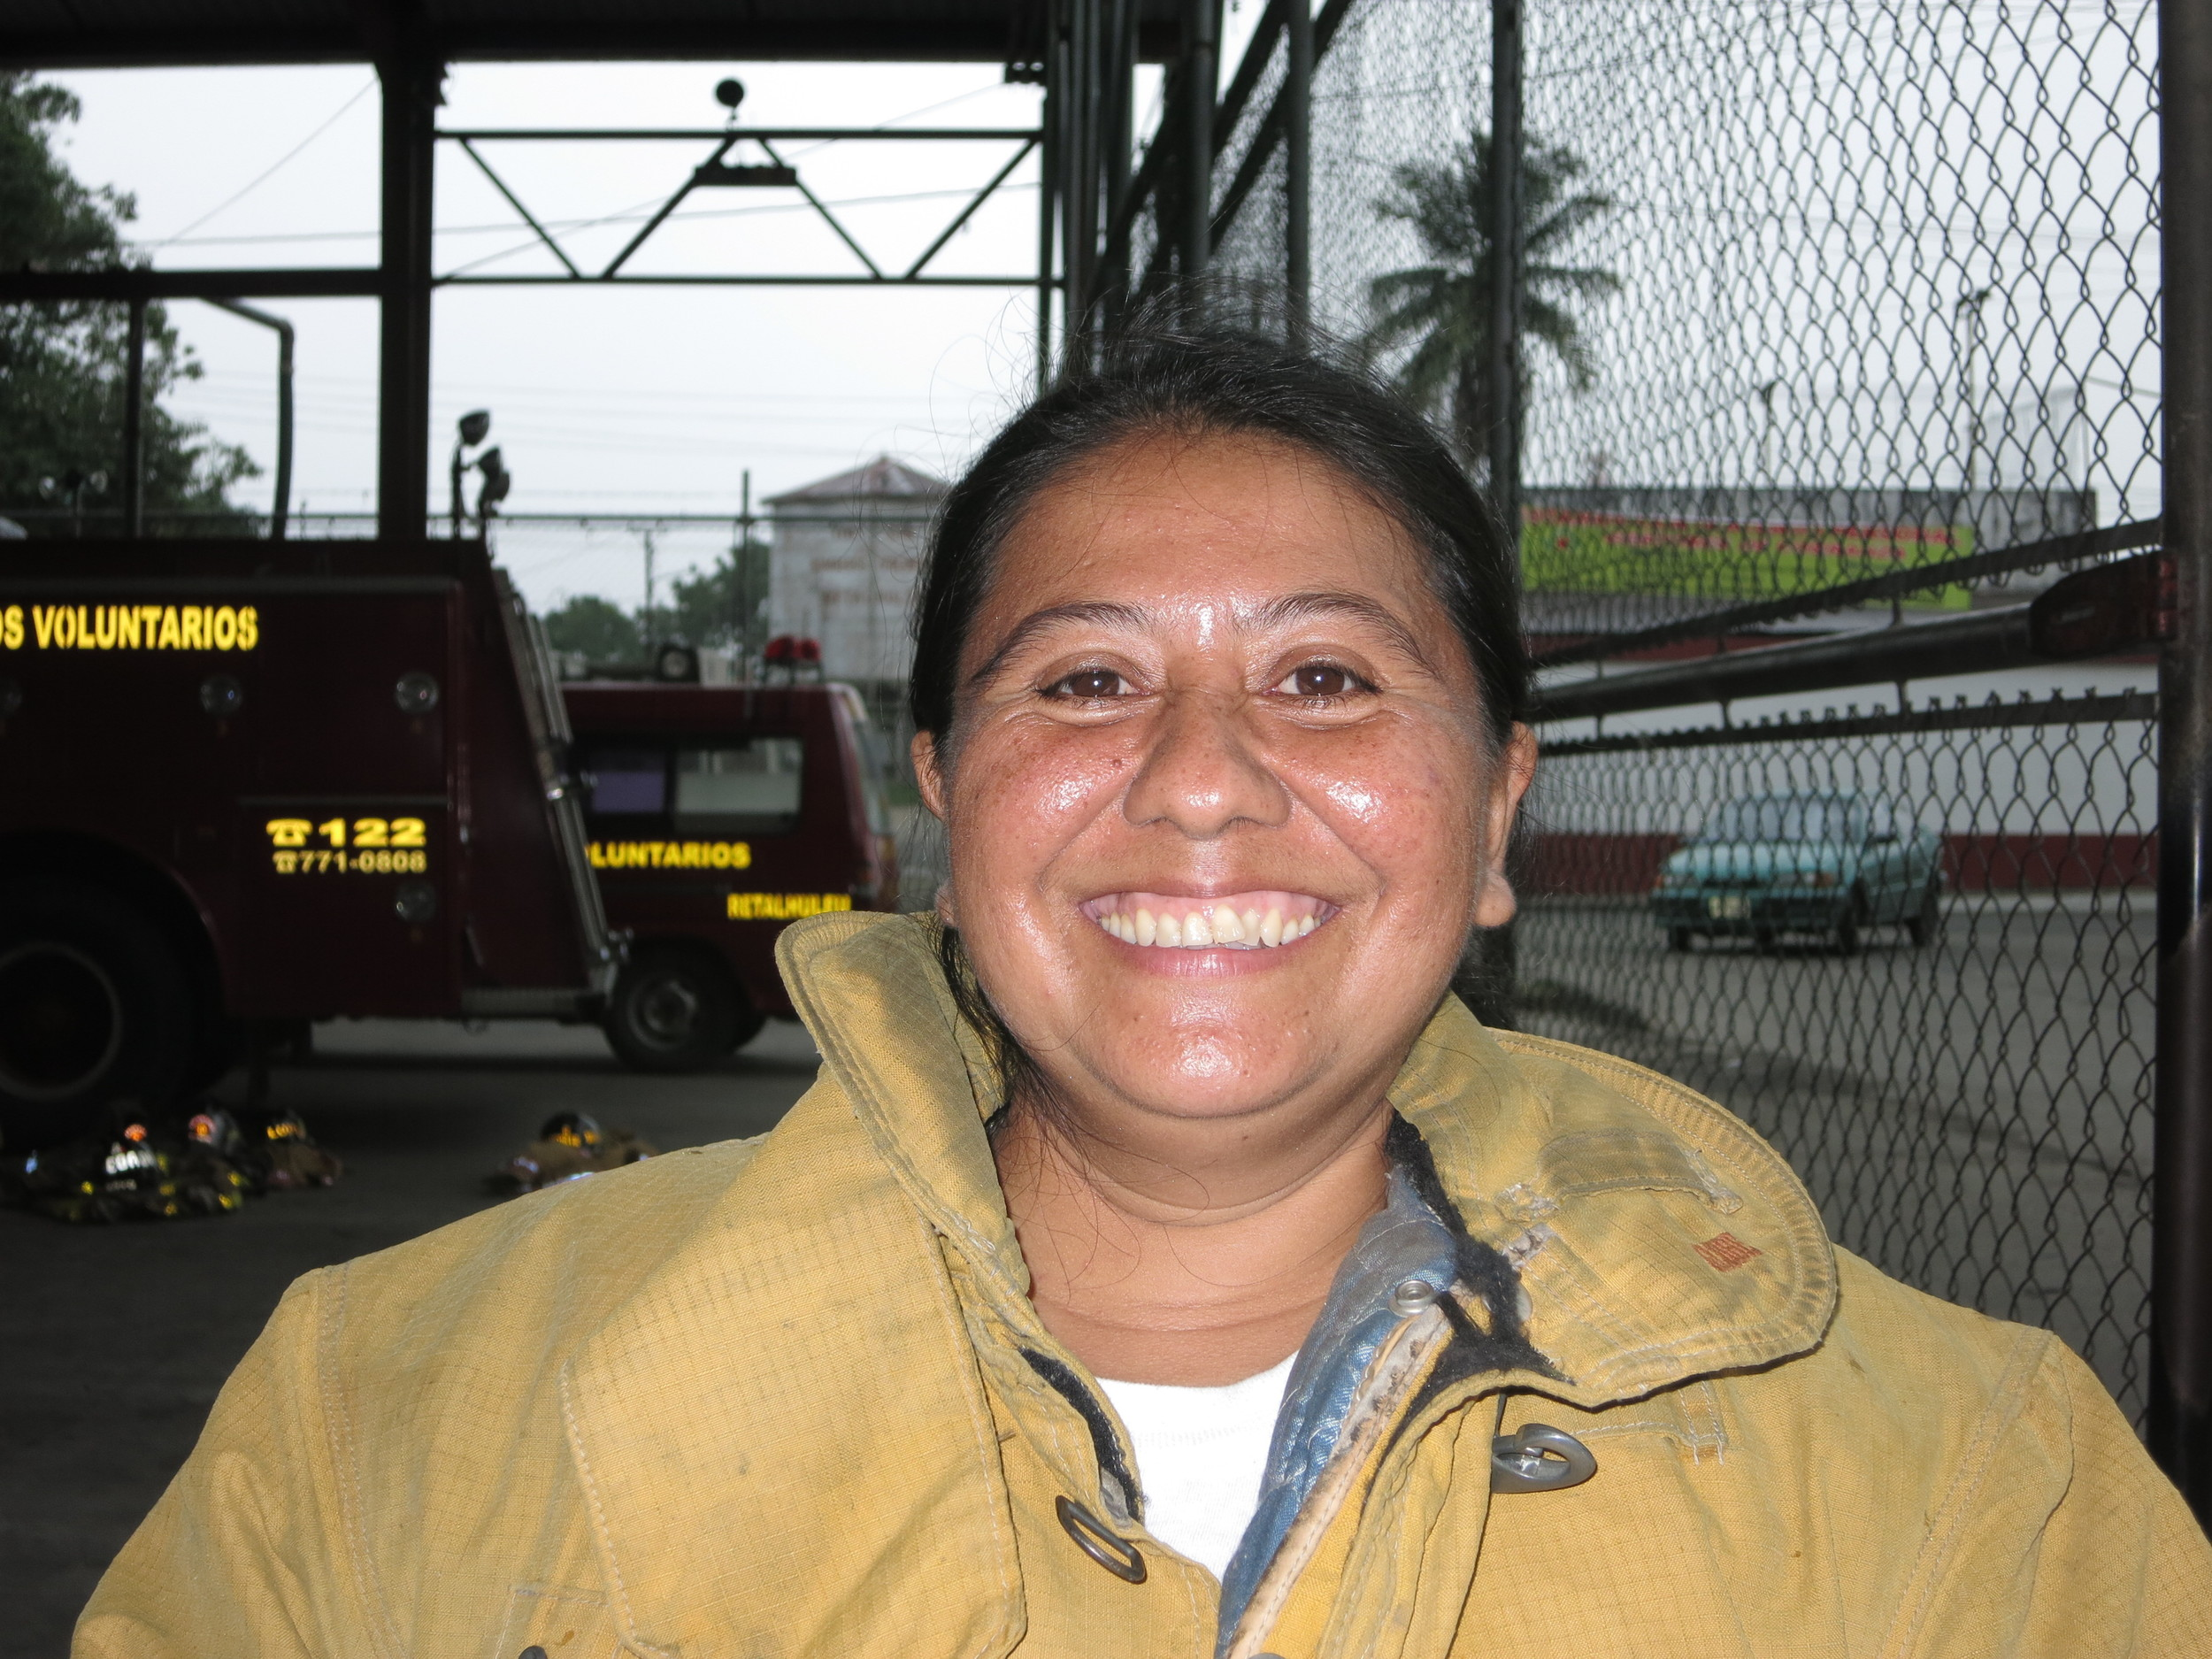 Damaris Aleyda Castillo Flores, 39 years old, 5 years a volunteer, she also works in a hospital